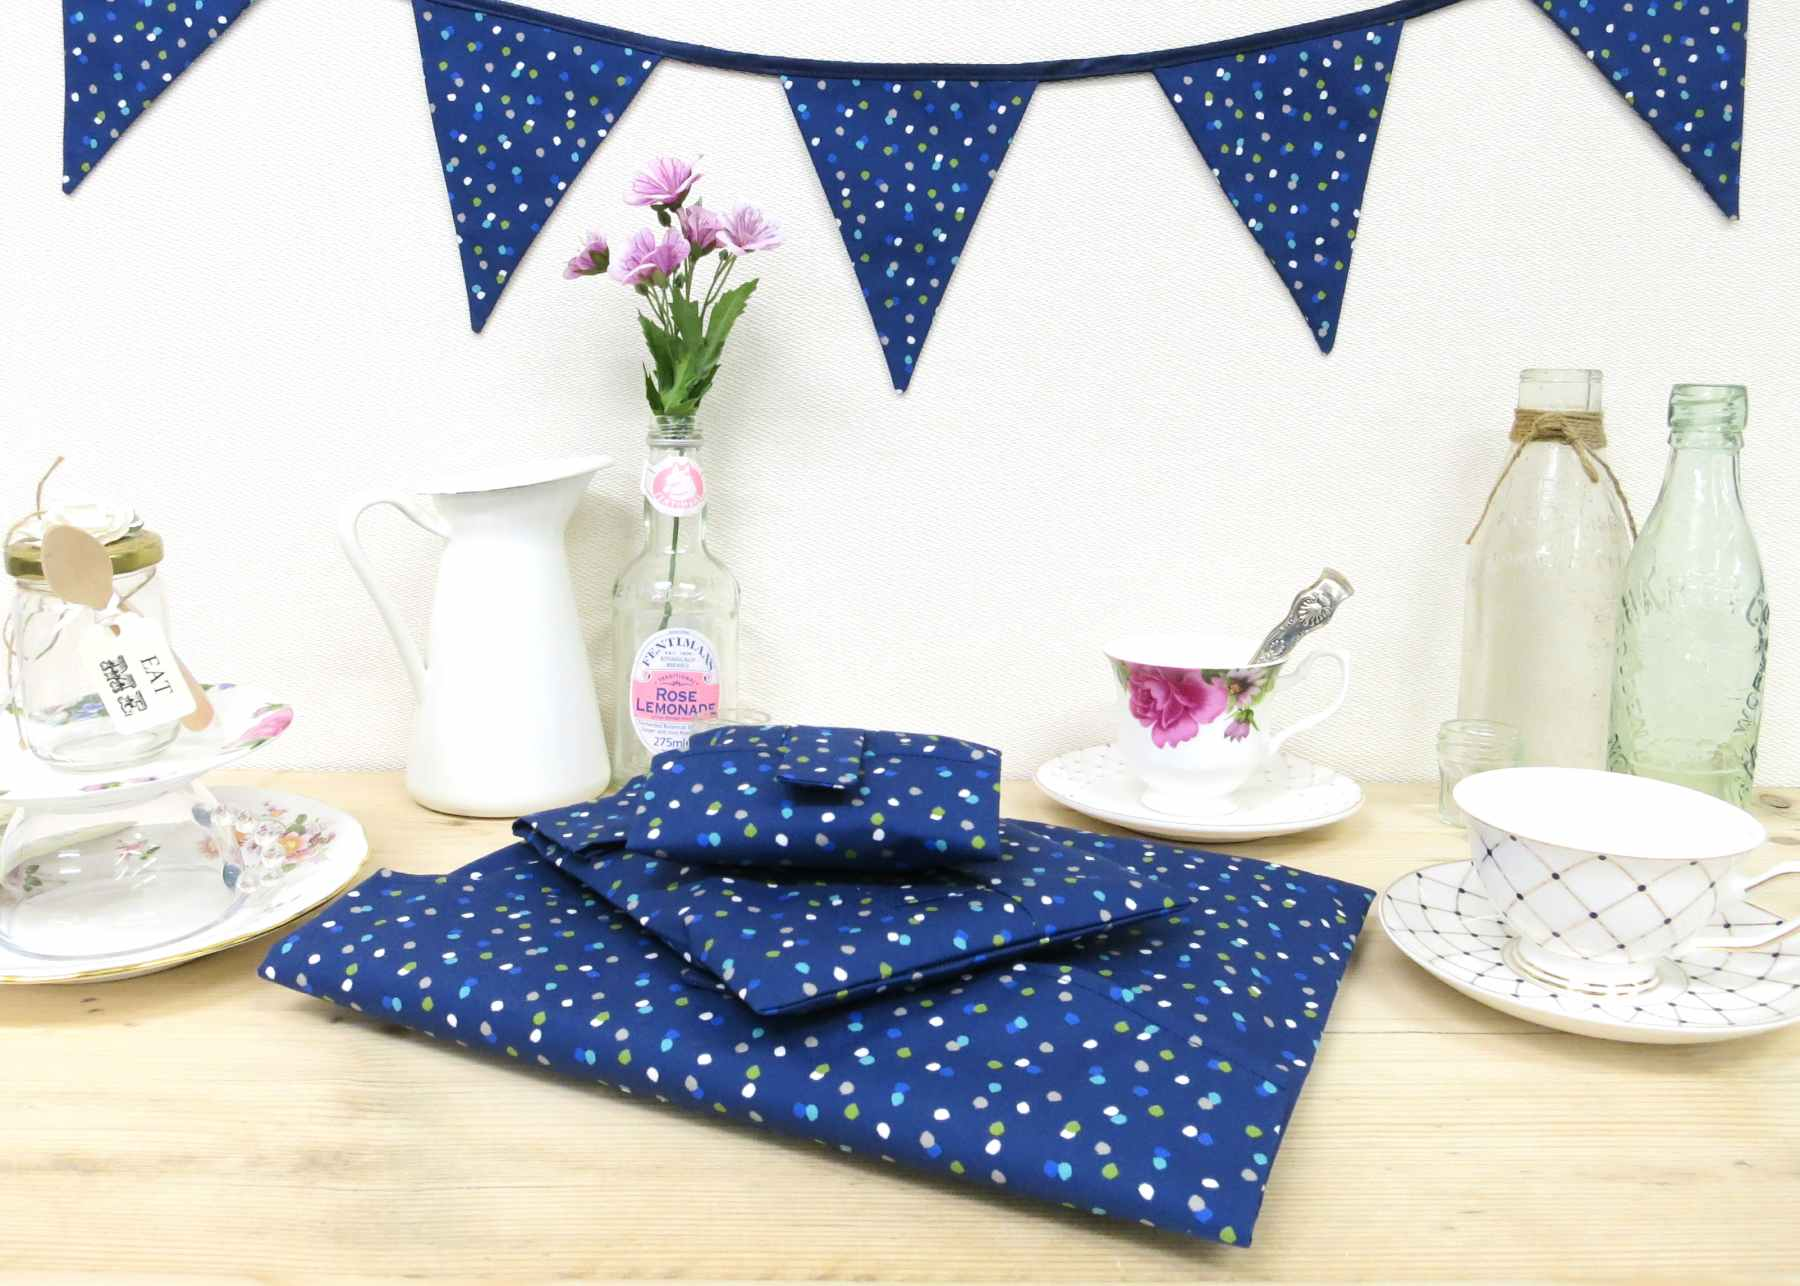 A setting for birthday tea, with Blue Spotty bunting and reusable gift wrap